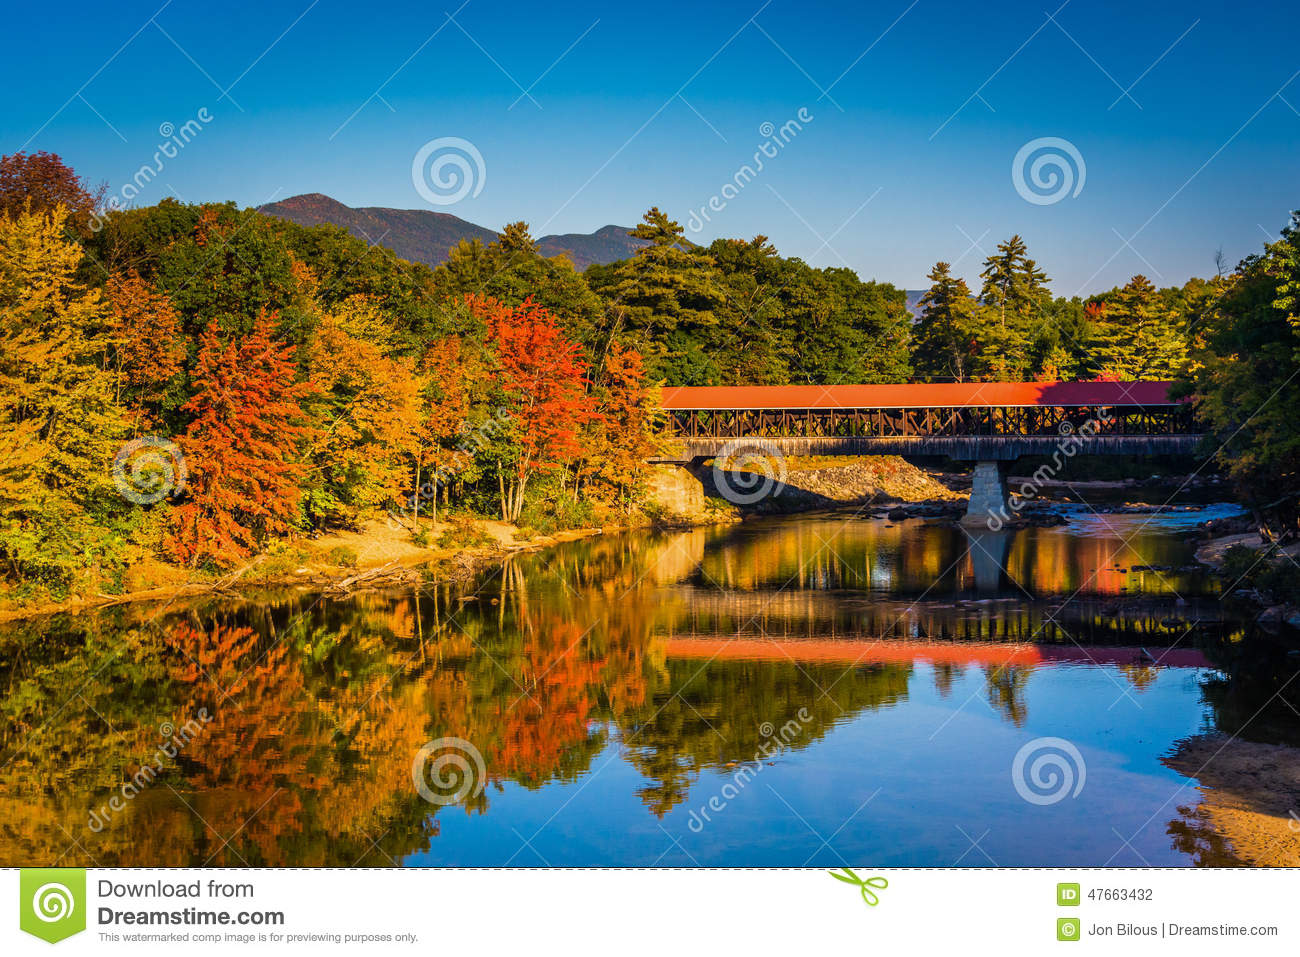 Fall Foliage Deskt Op Wallpaper The Saco River Covered Bridge In Conway New Hampshire